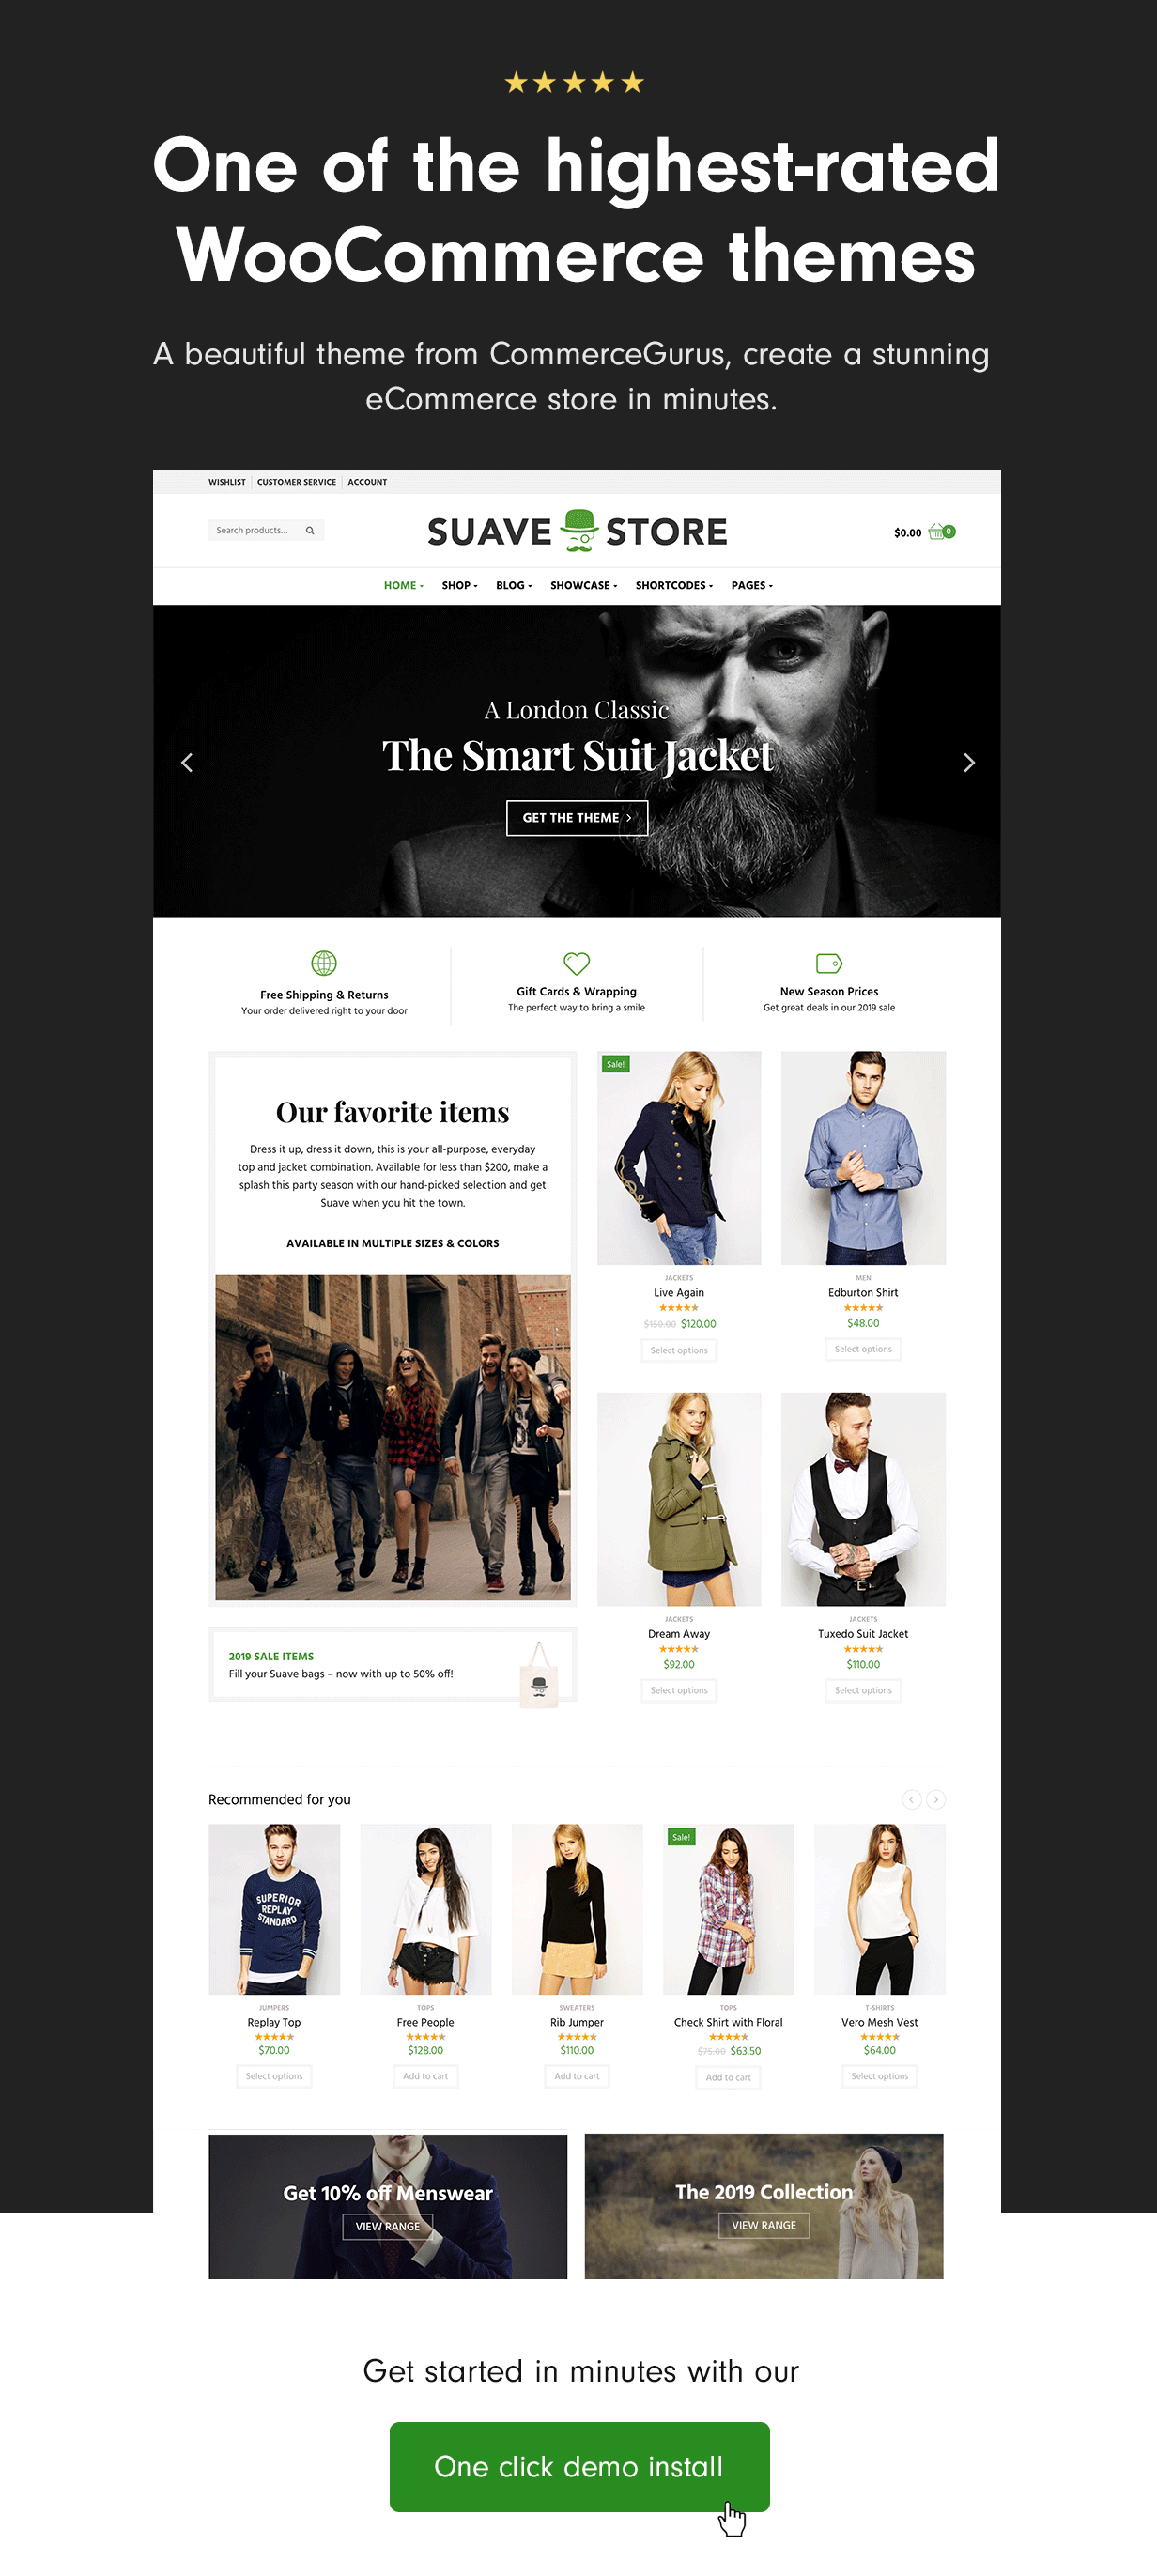 Fantastic WooCommerce theme